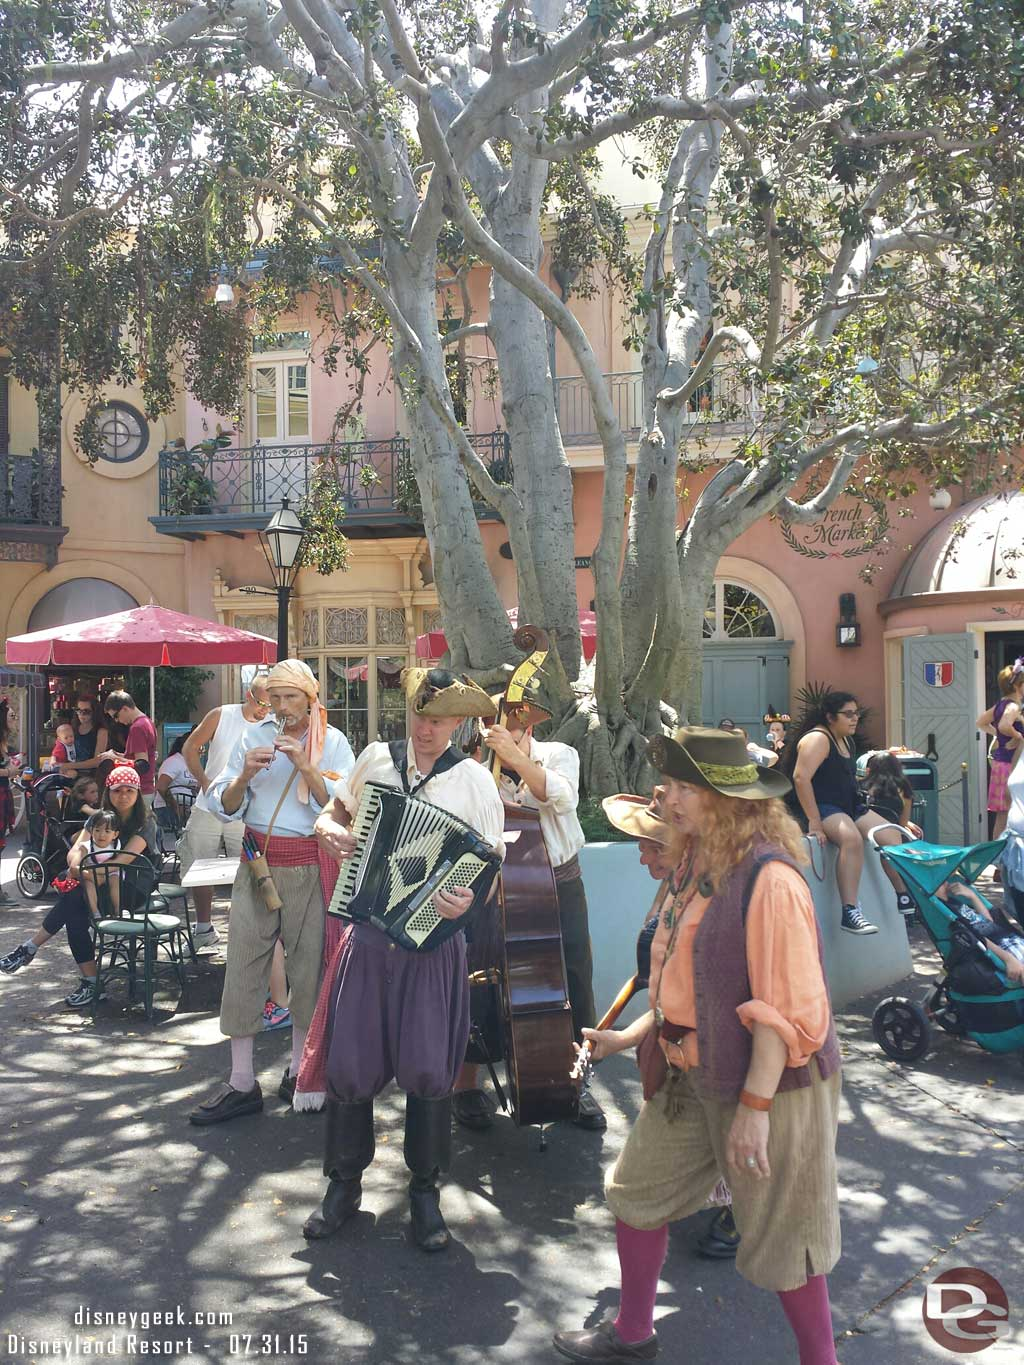 Crossed paths with the Bootstrappers in New Orleans Square #Disneyland